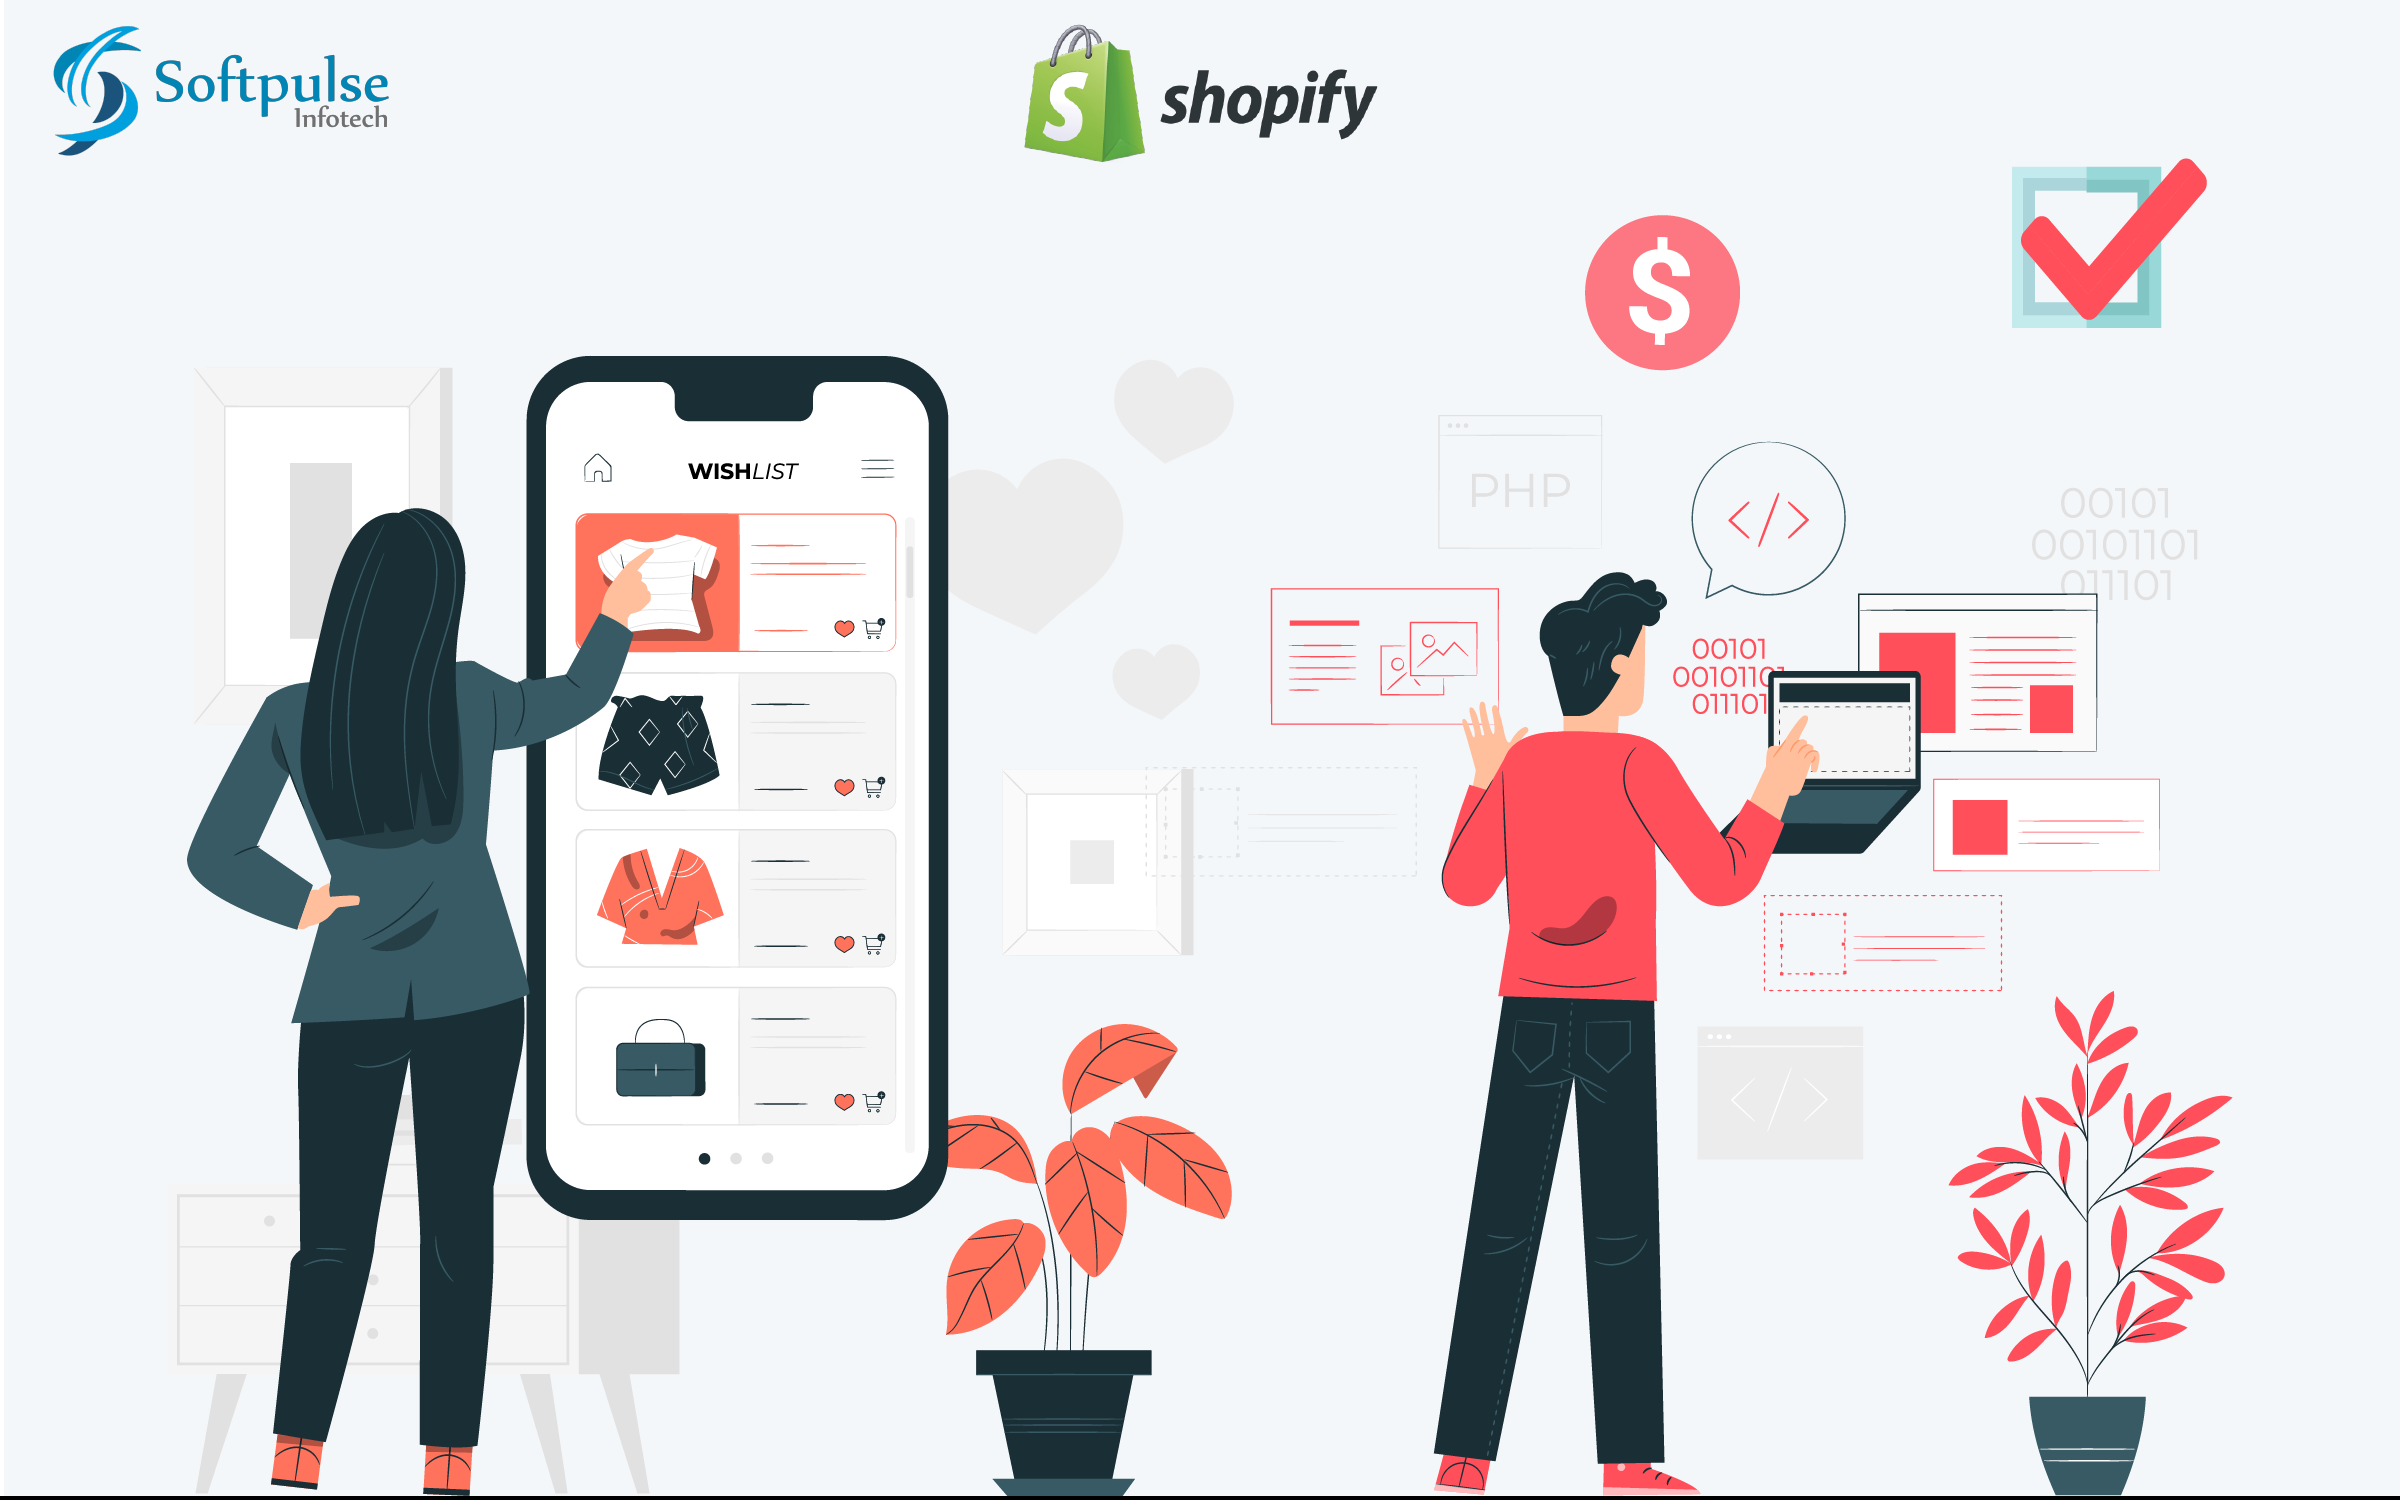 Key Highlights of Shopify Unite 2021: Major Announcements